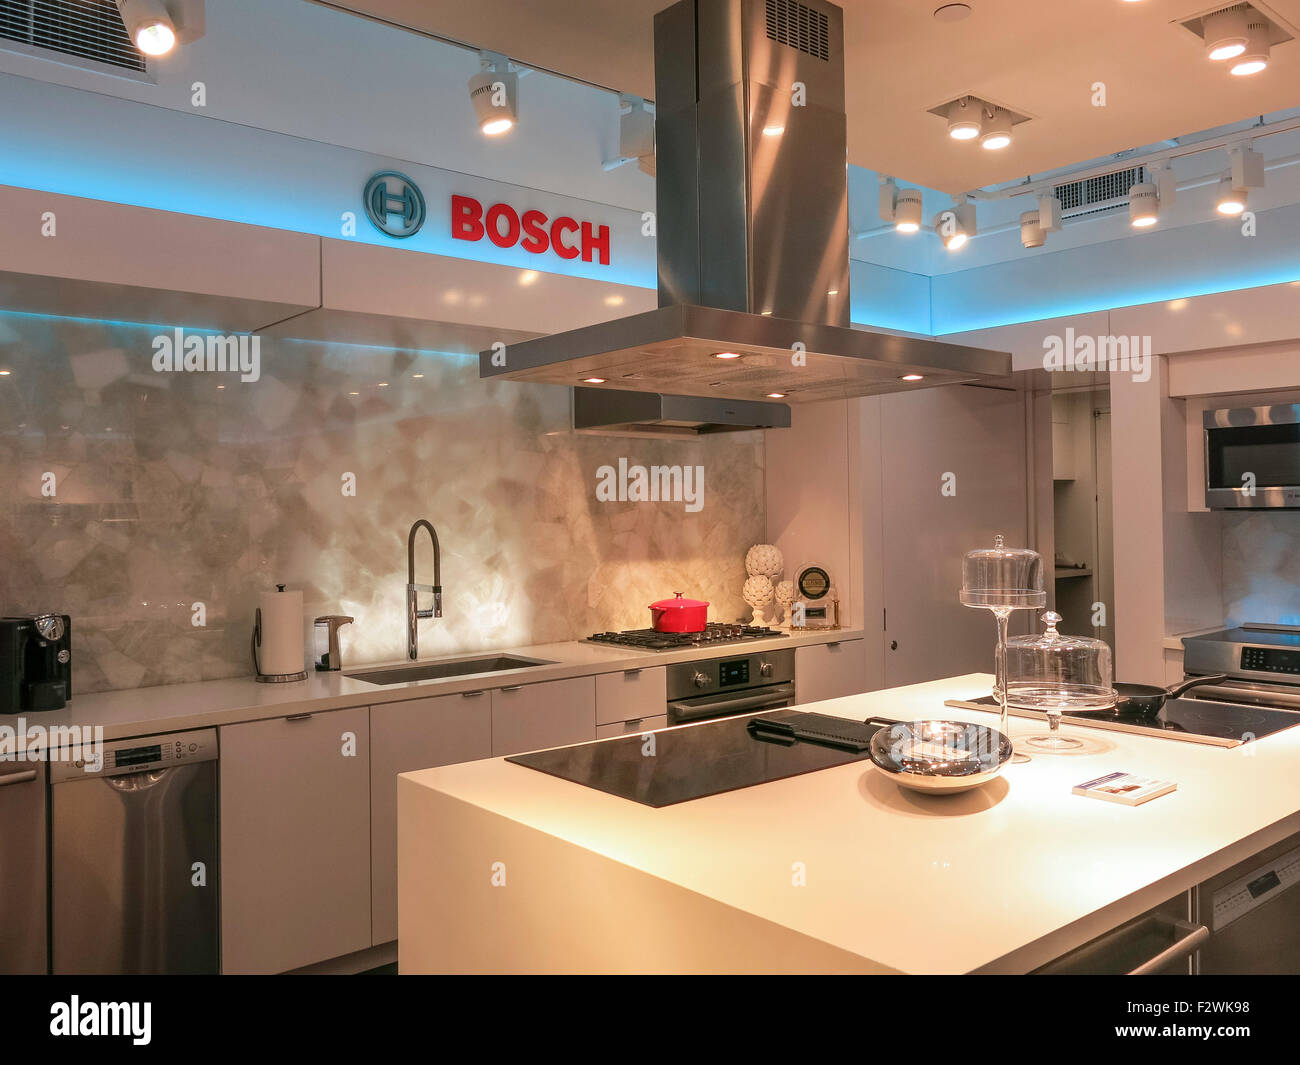 Luxury Interior Bosch Brand Kitchen Design Showroom, NYC, USA